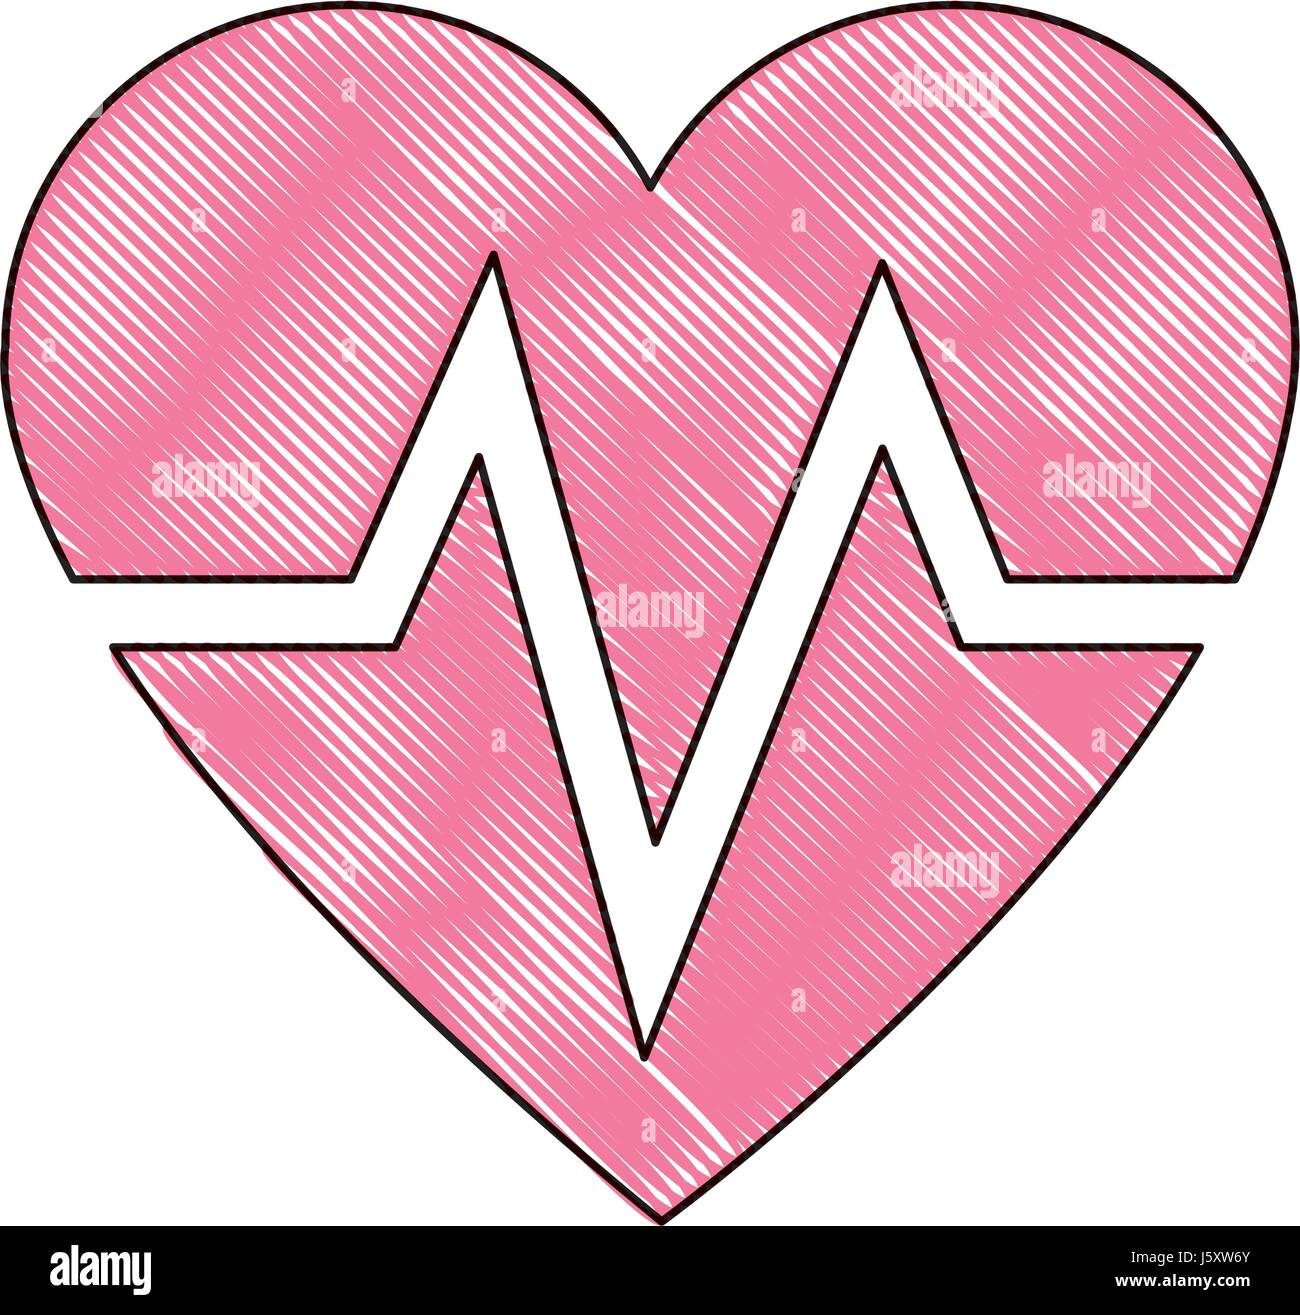 drawing heart beat health care medical Stock Vector Art